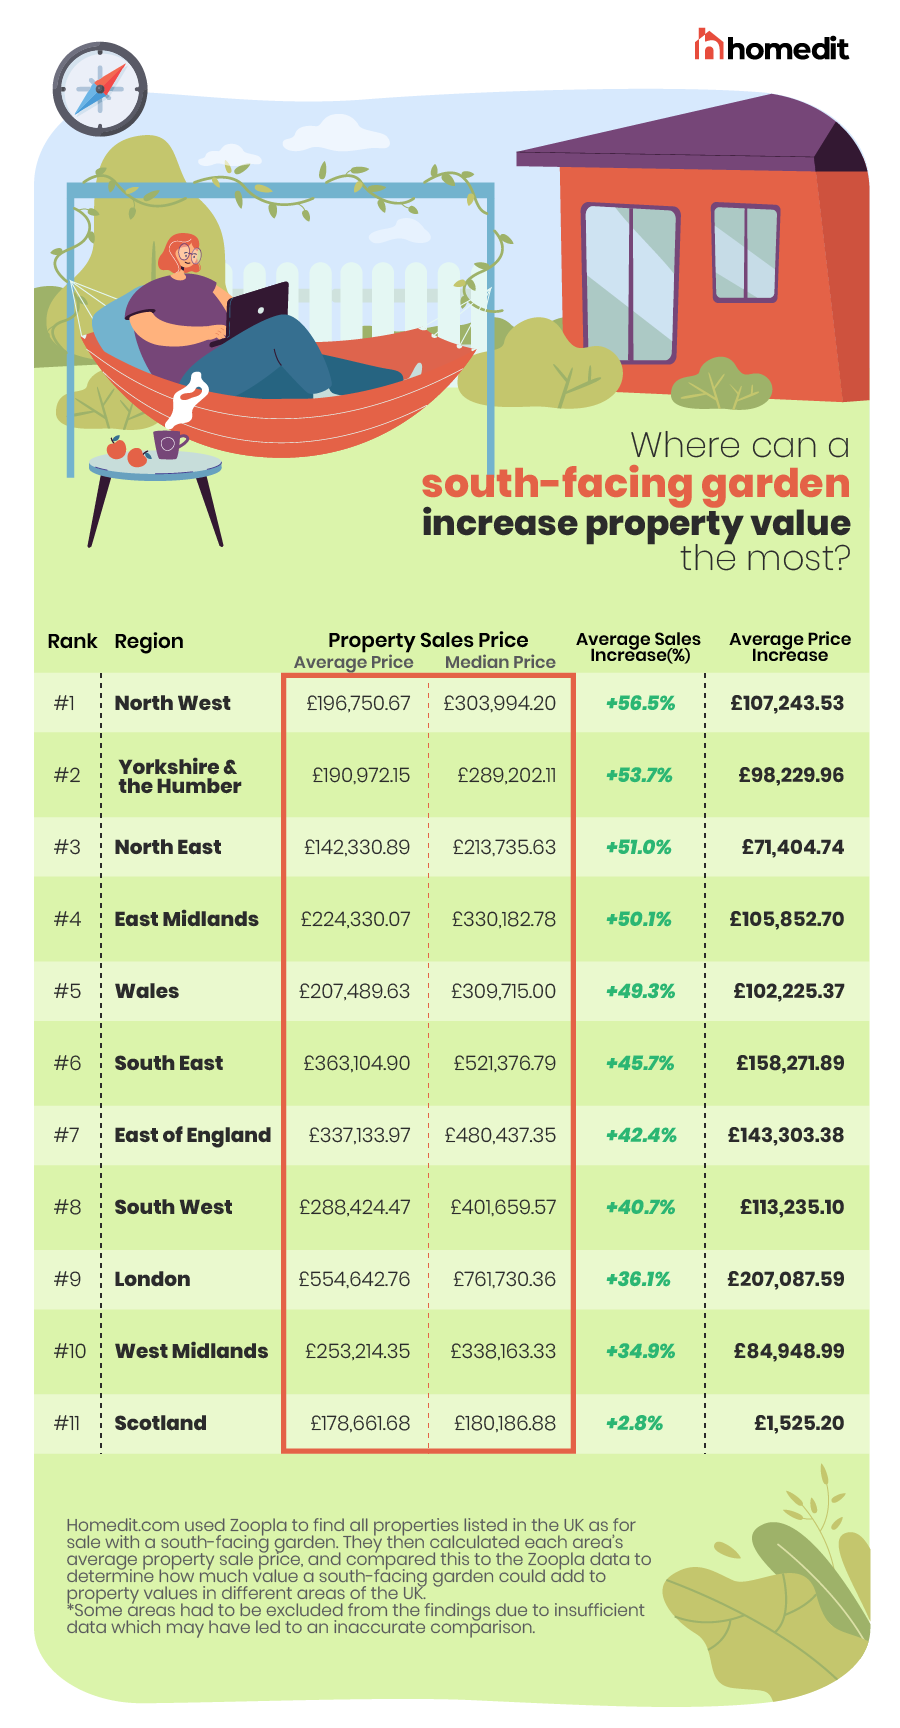 In which region of the UK can a south-facing garden increase property value the most?